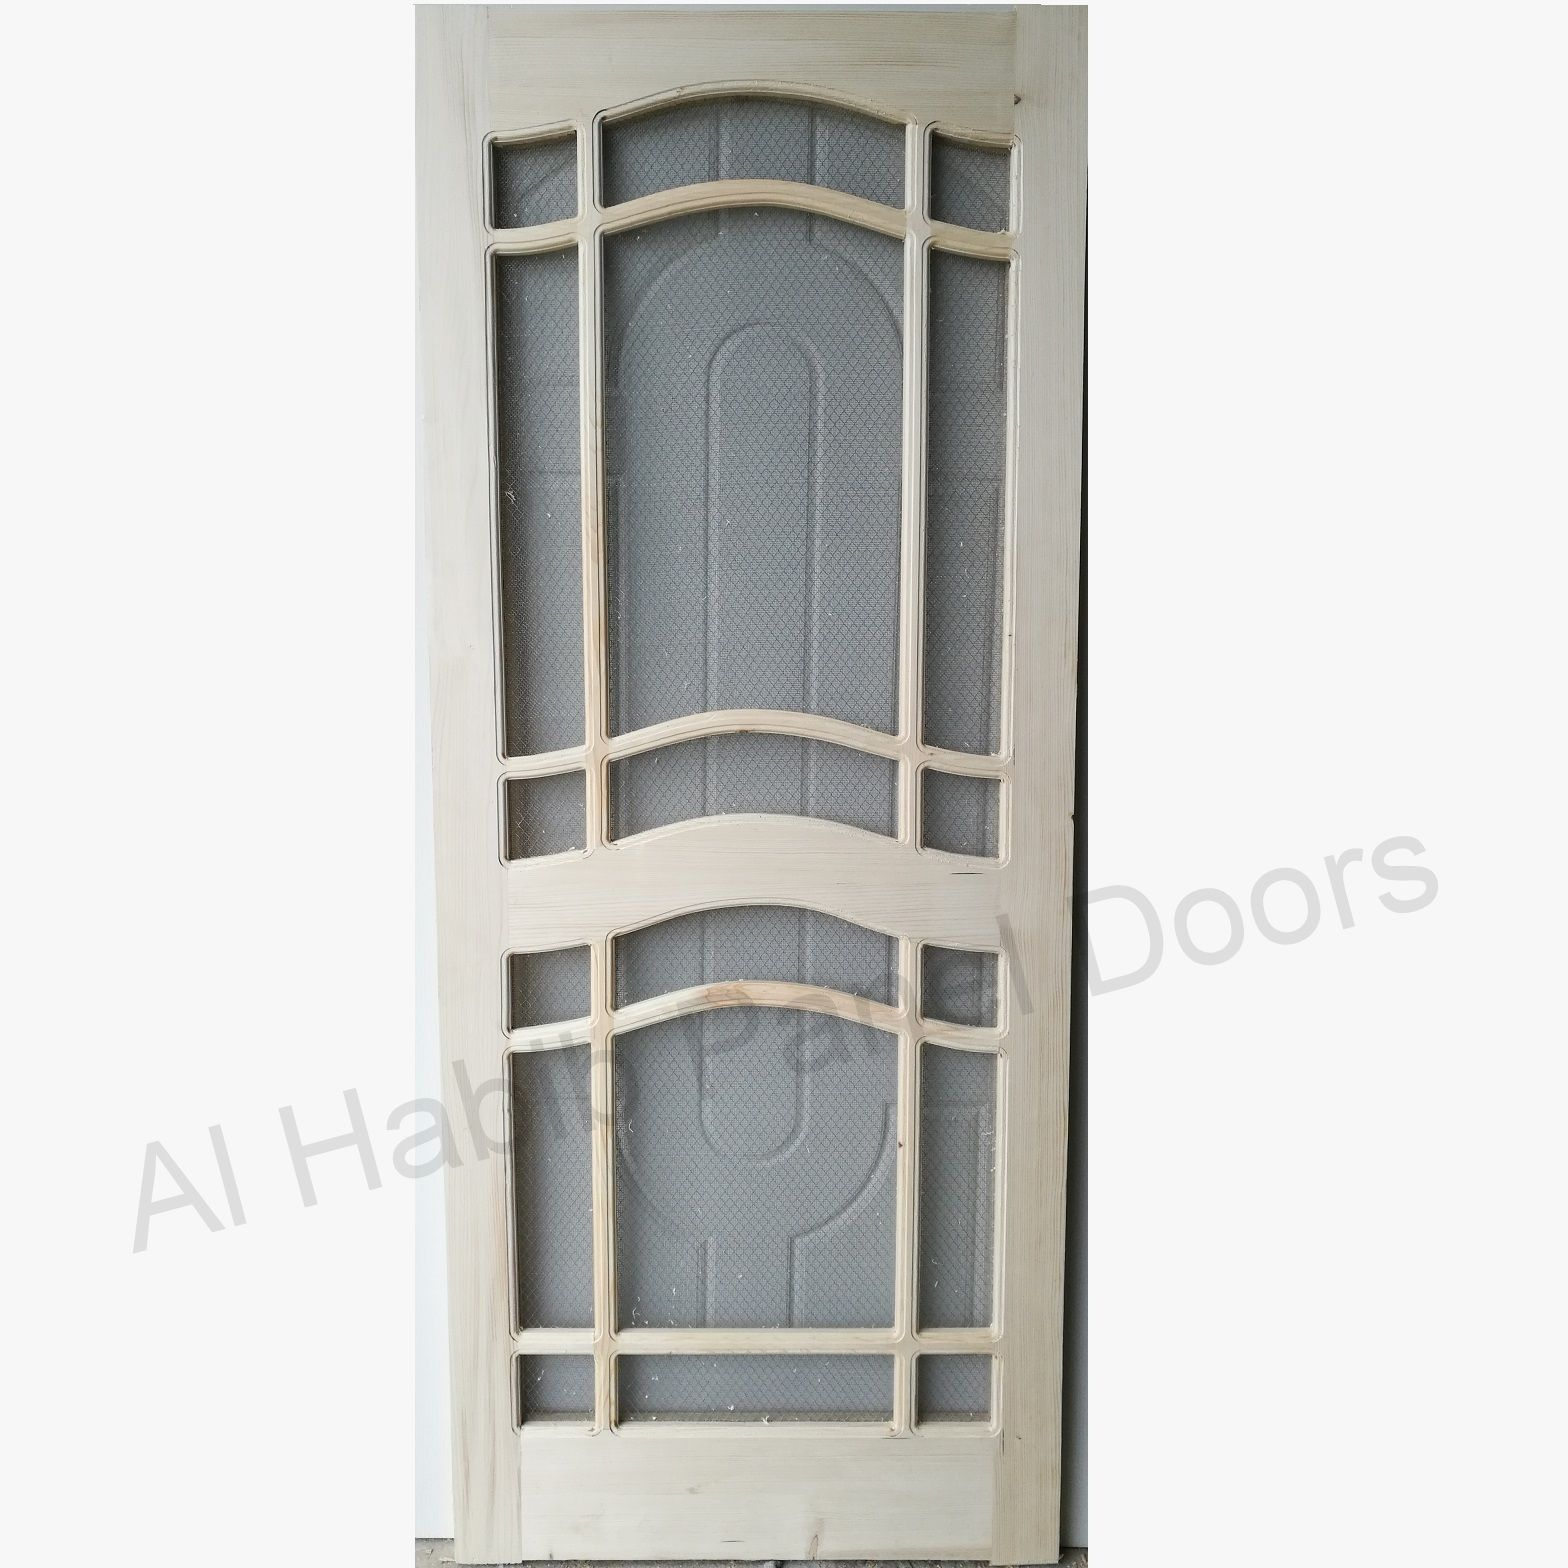 Wooden Wire Mesh Two Panel Curve Door Hpd572 Mesh Panel Doors Al Habib Panel Doors Wooden Panel Doors Room Door Design Steel Door Design